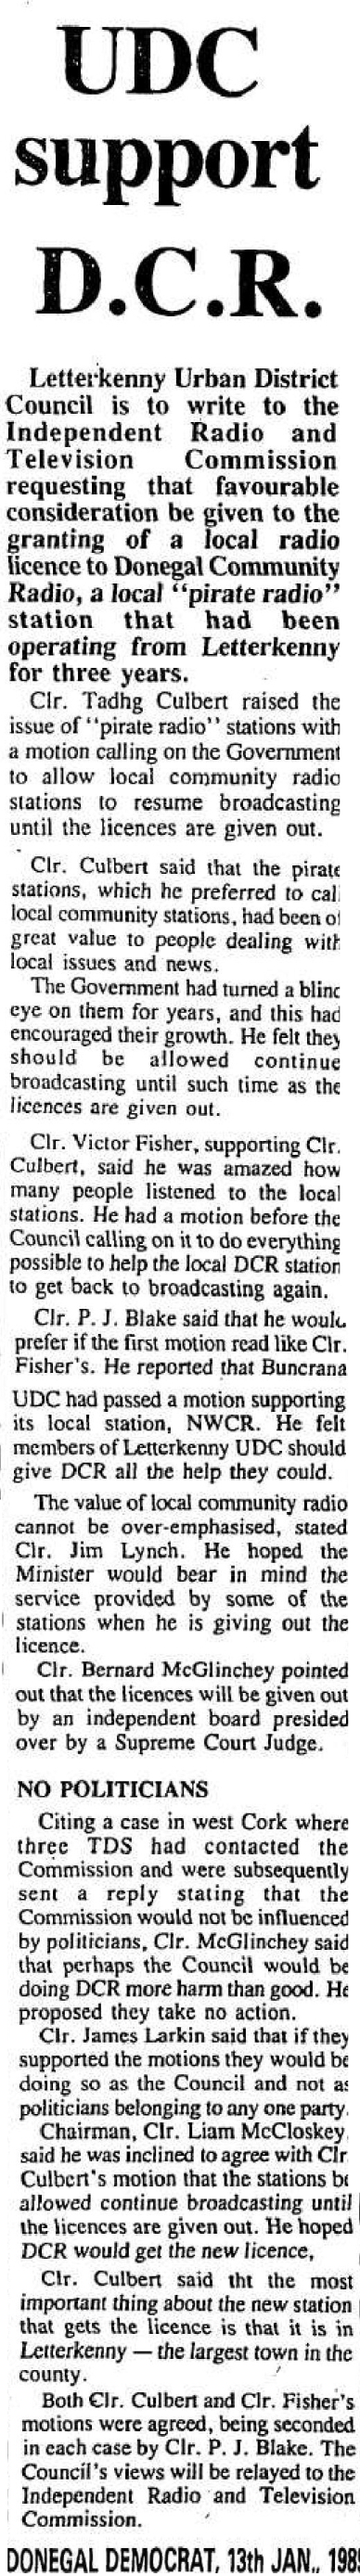 UDC Support DCR was a headline from The Donegal Democrat from January 13th 1989.